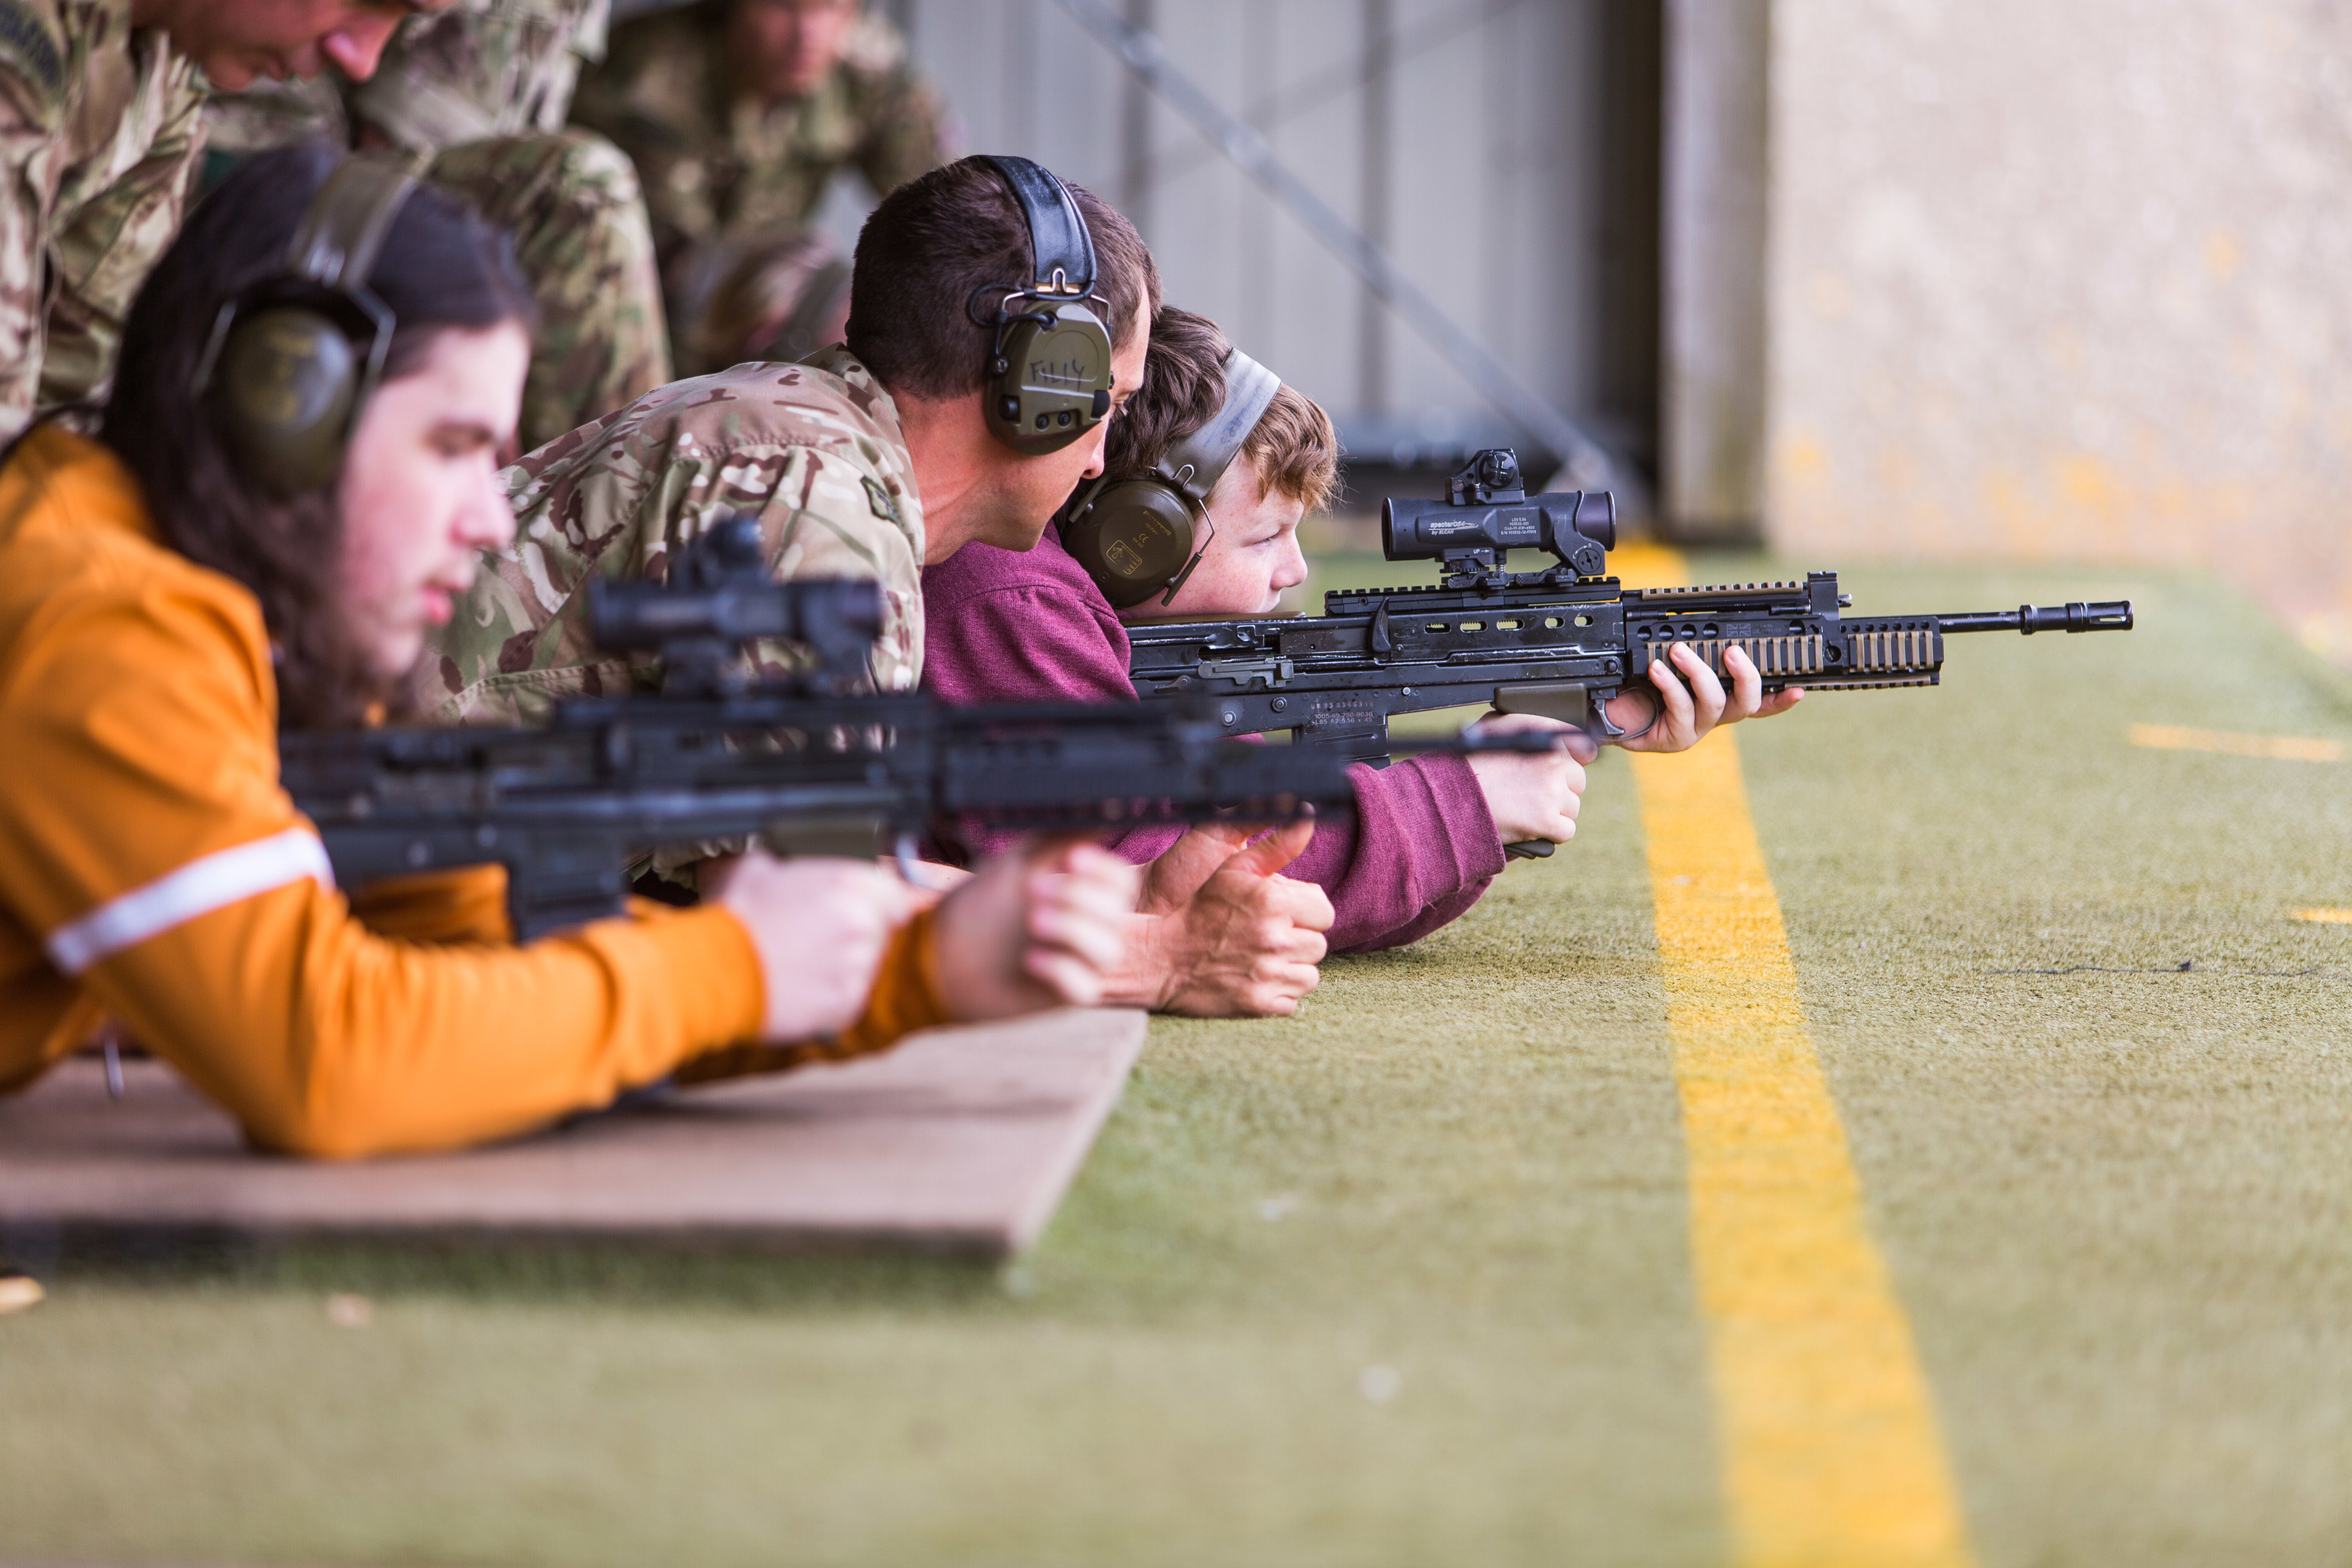 Royal Marines demonstrate to Lochlan Thomson (13) the workings of an SA80 prior to going live on the range.